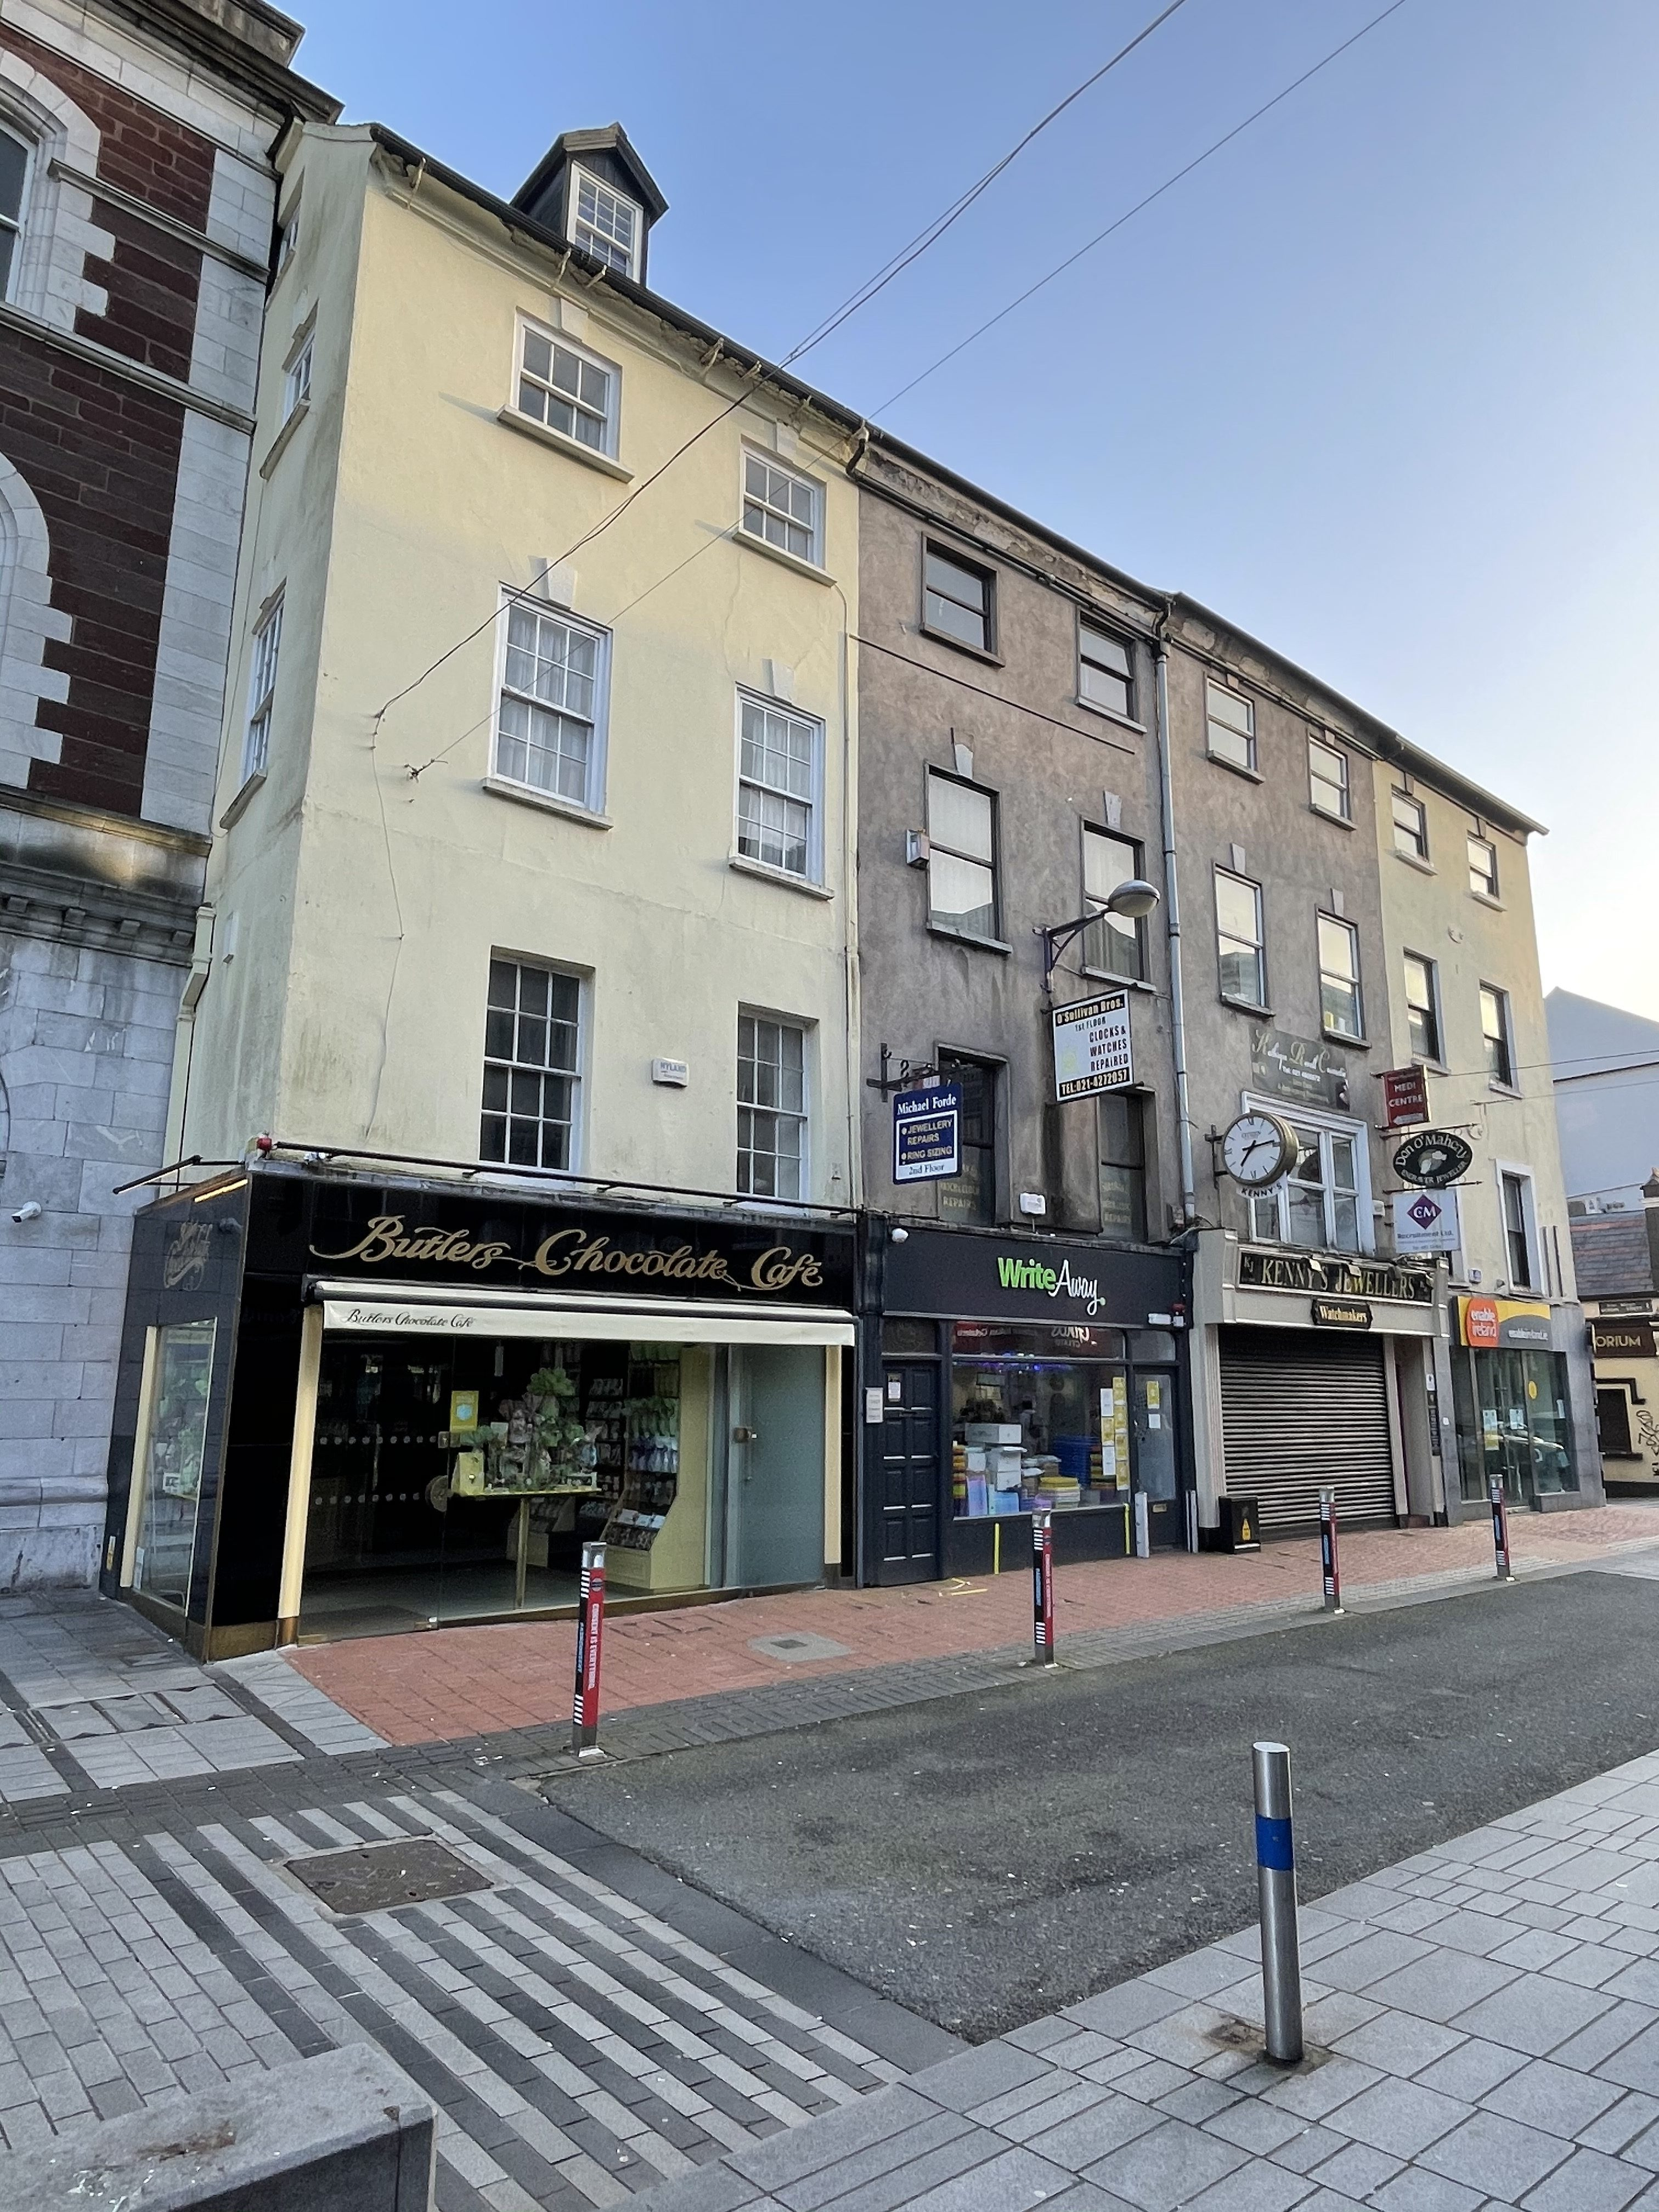 Four two-bay by four-storey with attic premises, c. 1760 (picture: Kieran McCarthy)